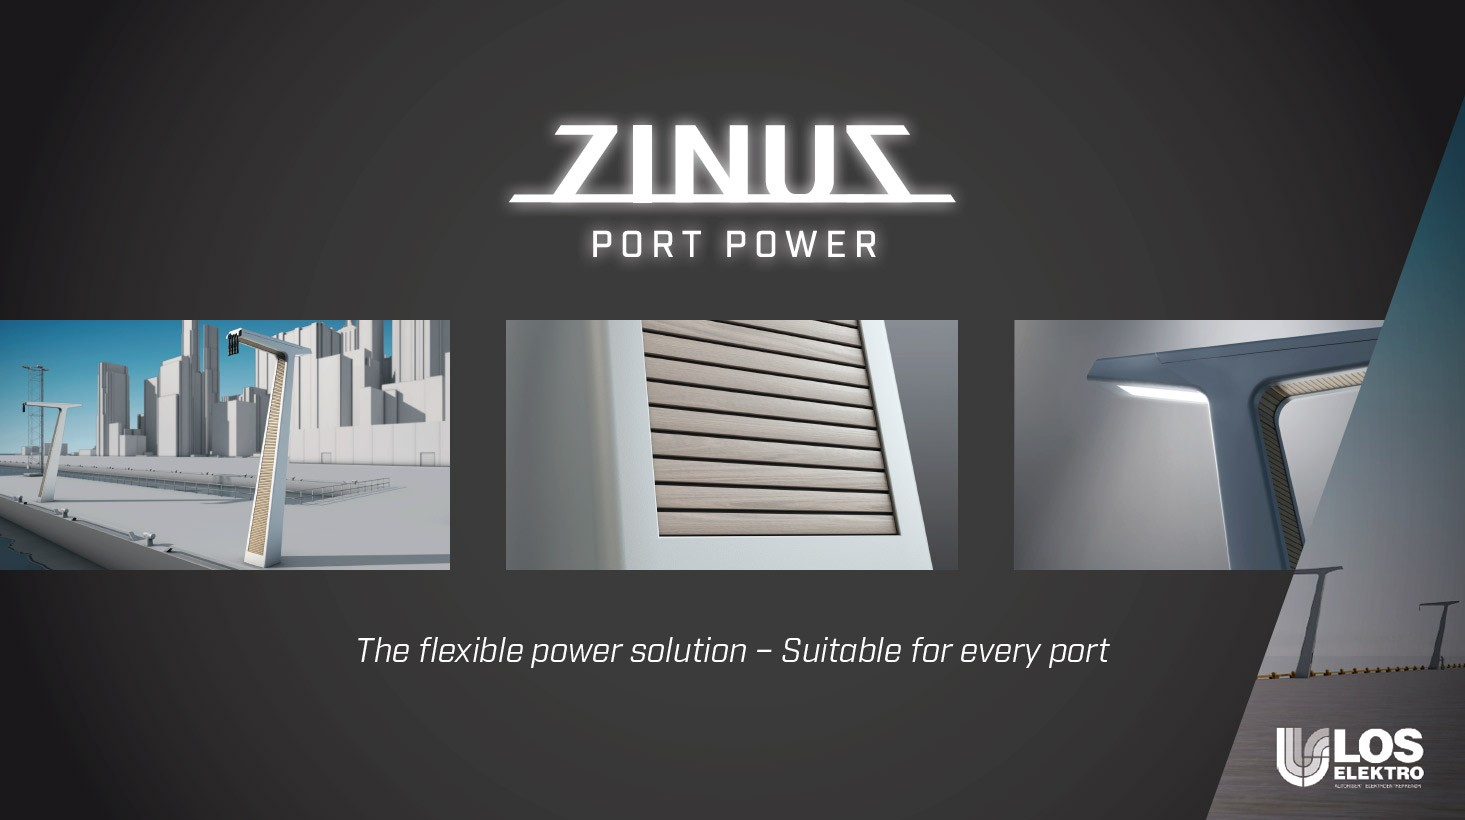 zinus-port-power-landstrom-fra-los-elektro